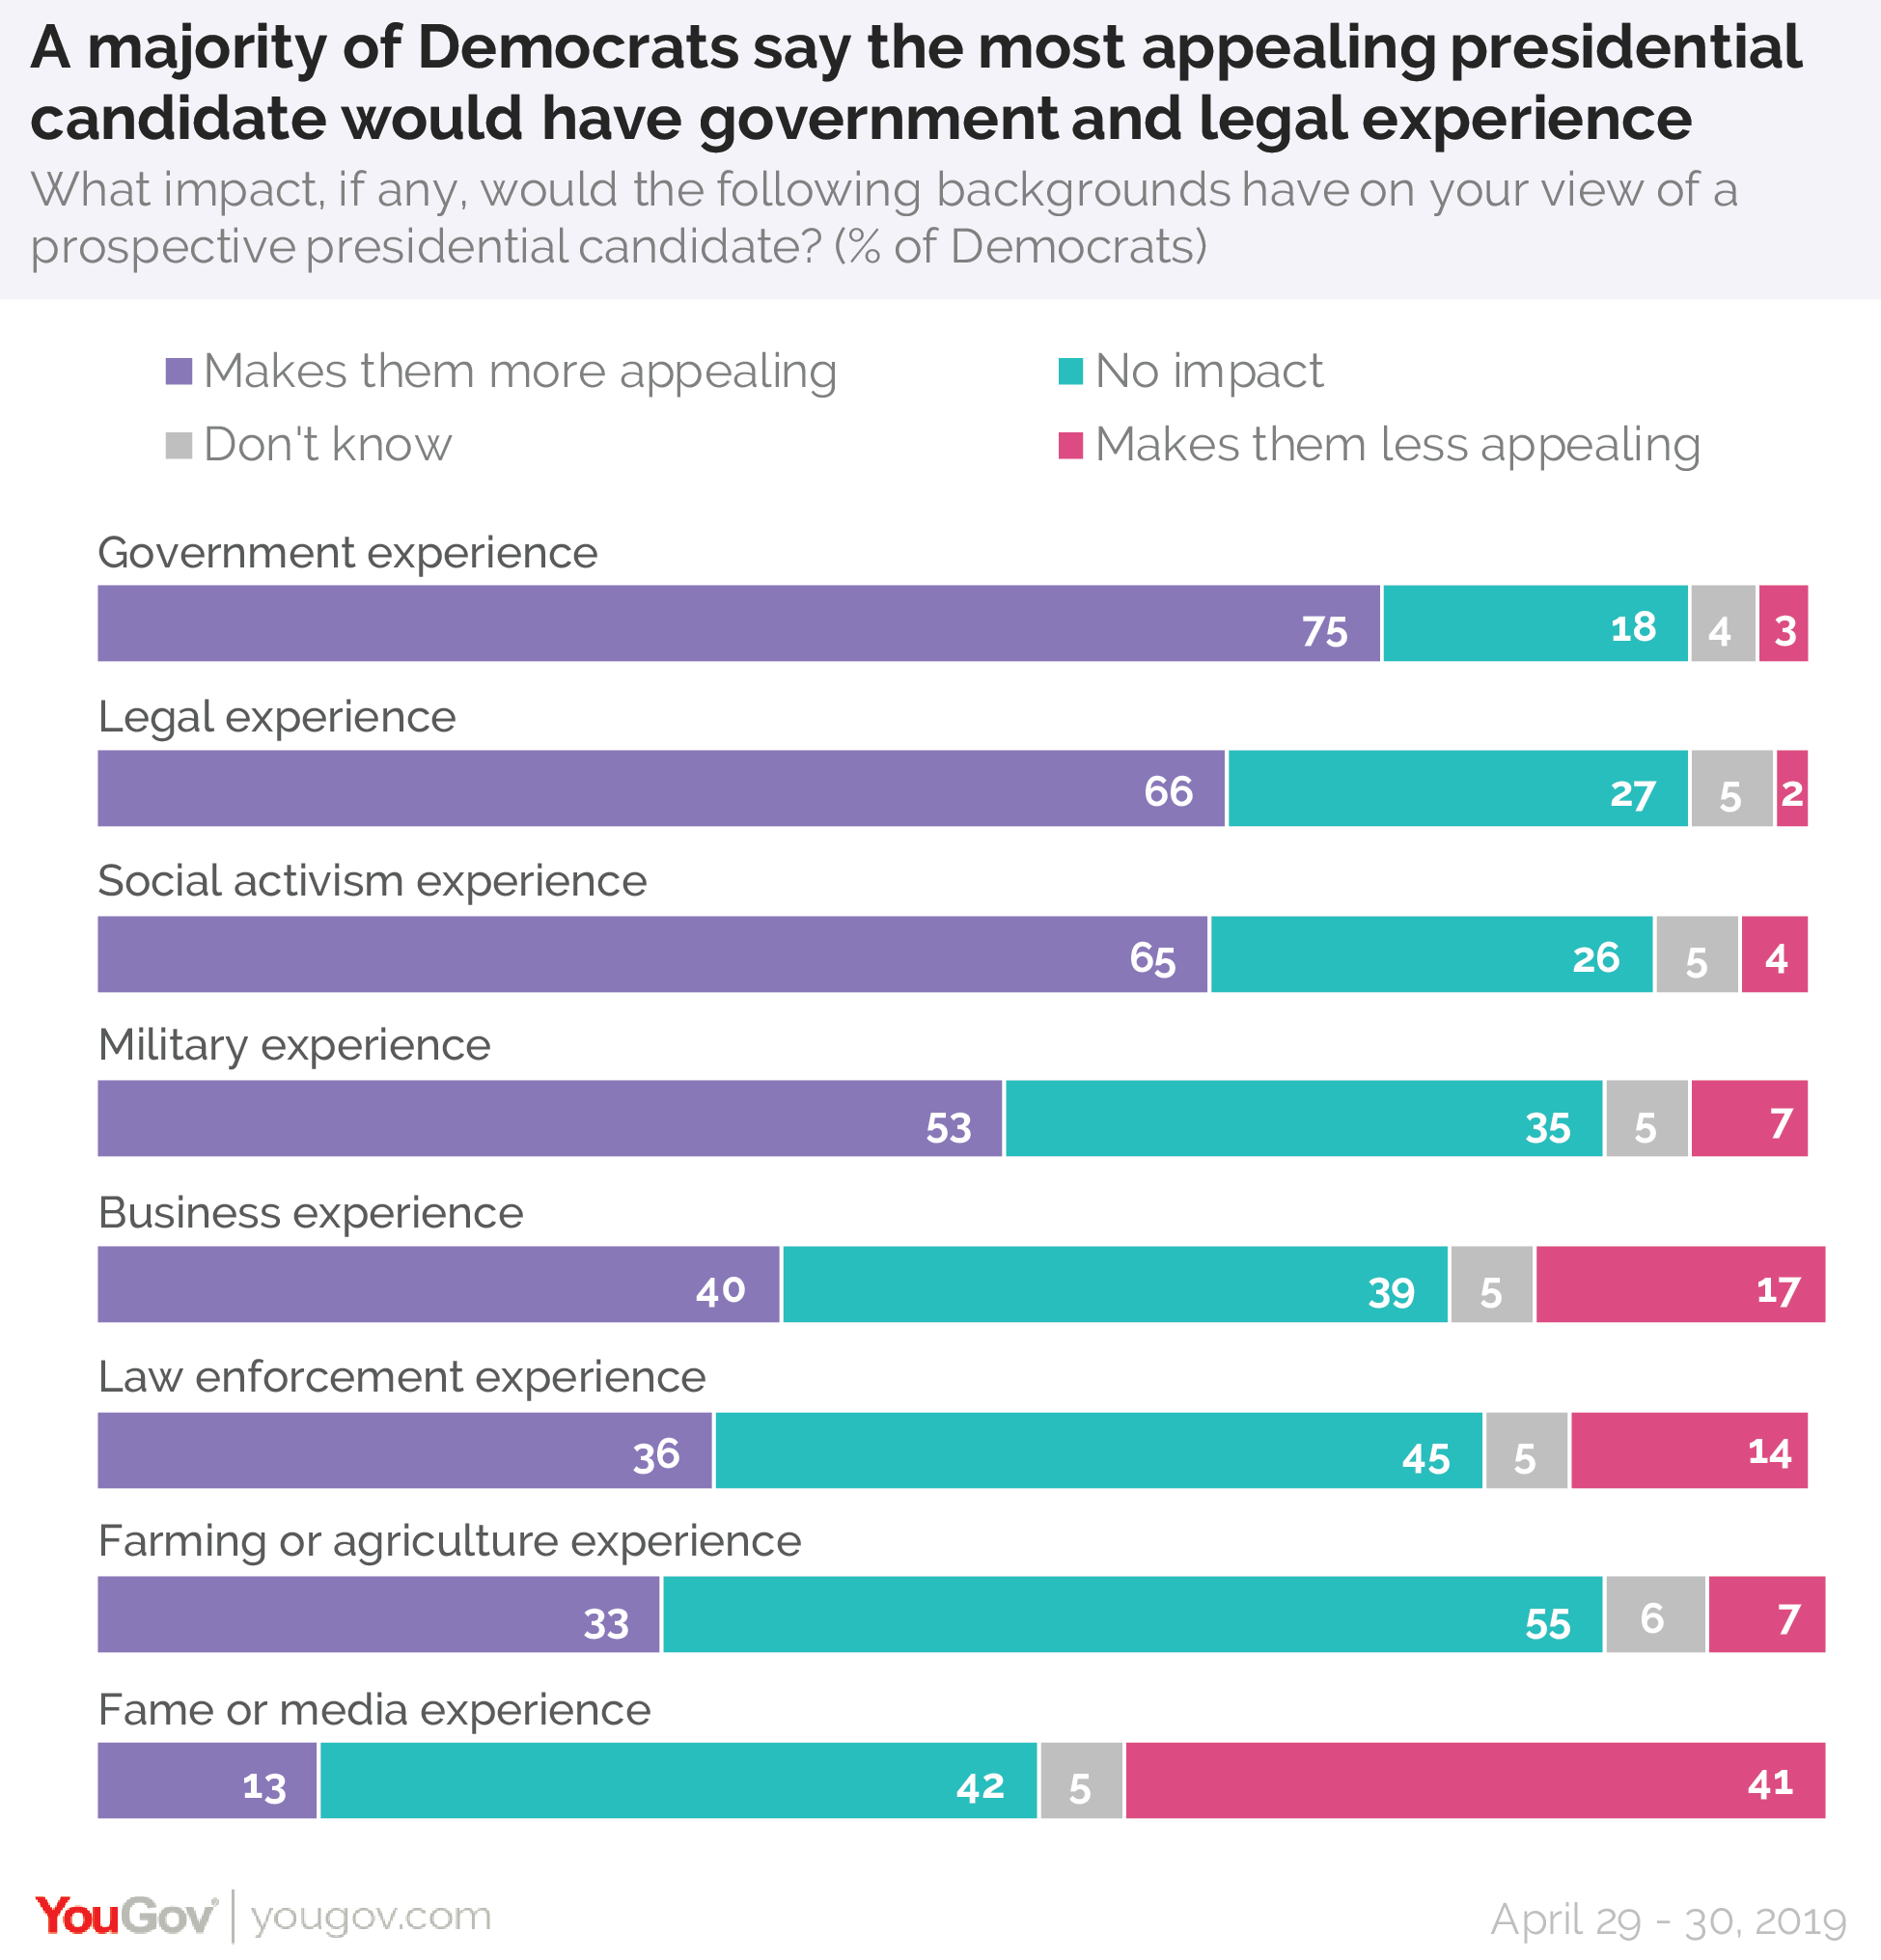 A majority of Democrats say the most appealing presidential candidate would have government and legal experience, as well as social activism experience